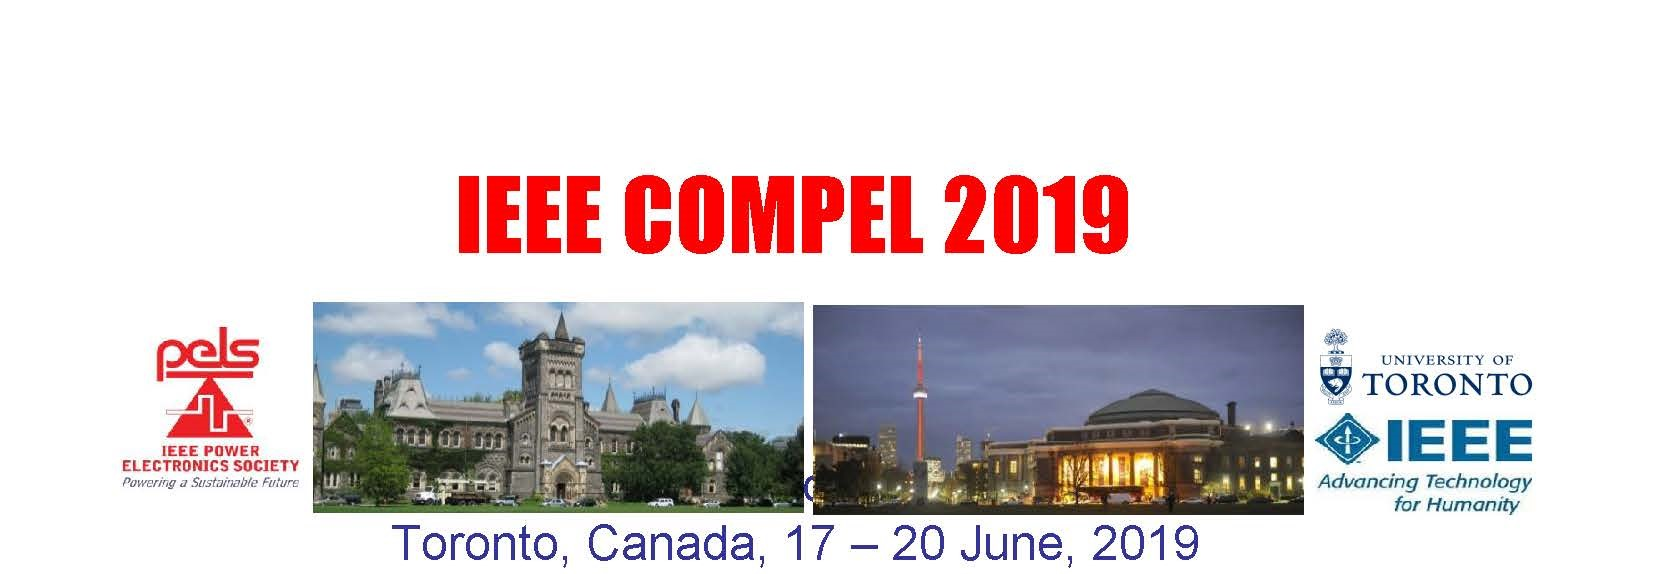 compel 2019 cfp cropped